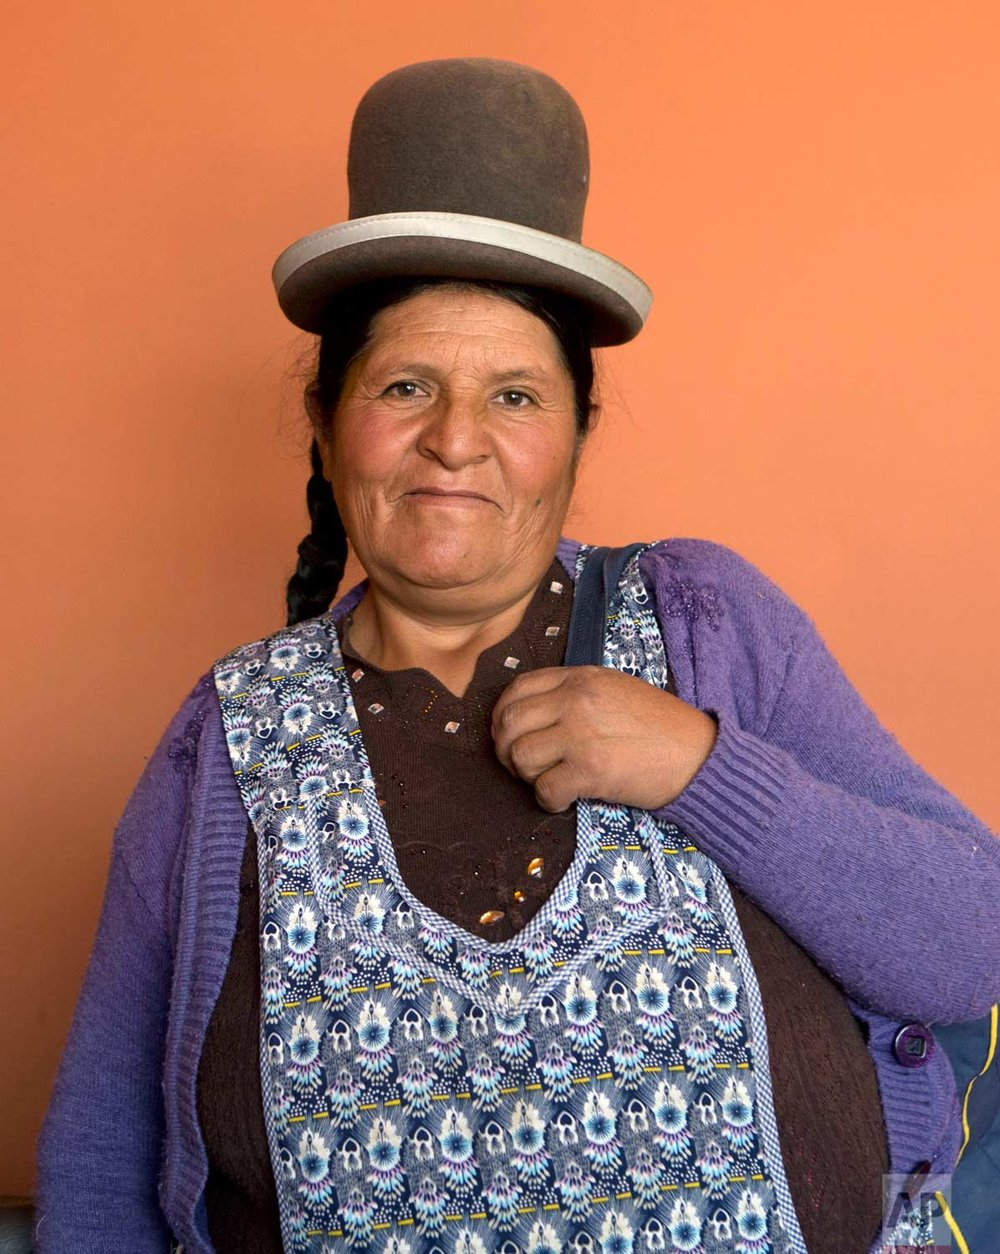 In this May 15, 2017 photo, midwife Daniela Vilca, 53, poses for a portrait at the Nila Heredia hospital in Patacamaya, Bolivia. The government's midwifery training program takes into account deeply rooted cultural traditions and the value of women who travel to distant areas that lack hospitals or doctors, according to German Mamani, Bolivia's deputy minister for traditional medicine. (AP Photo/Juan Karita)